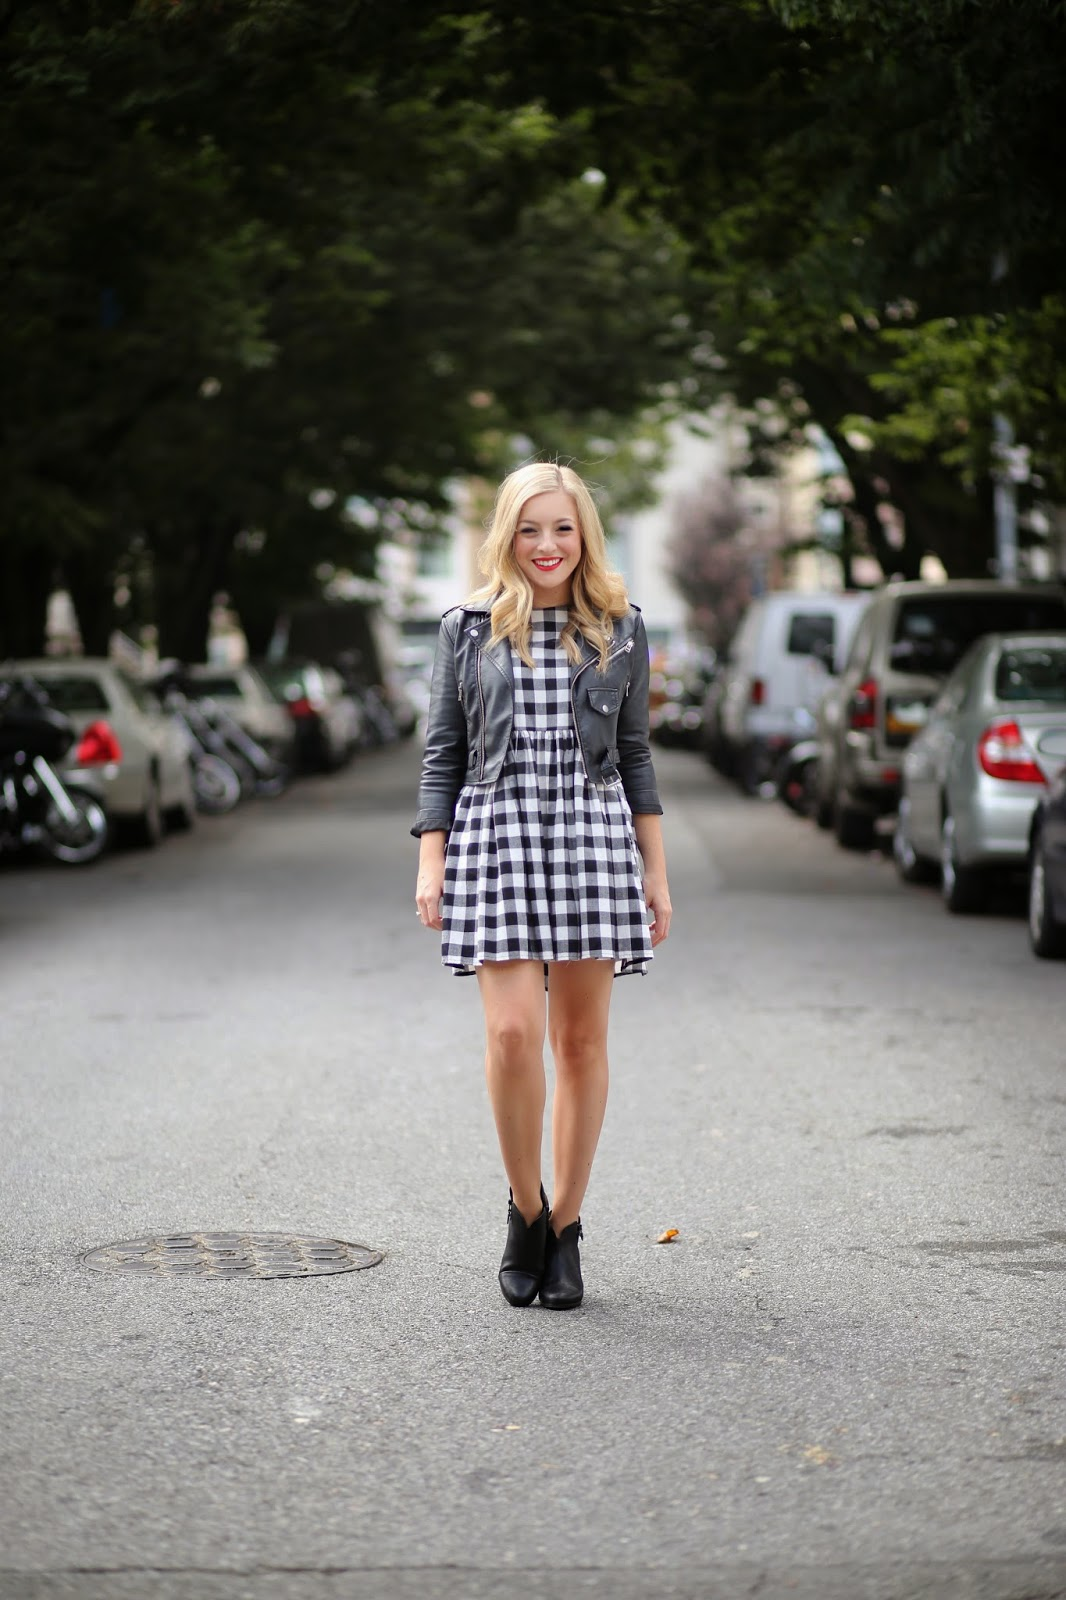 Asos Gingham Smock Dress, Rag and Bone Margot Ankle Boots, Nasty Gal Cropped Leather Jacket